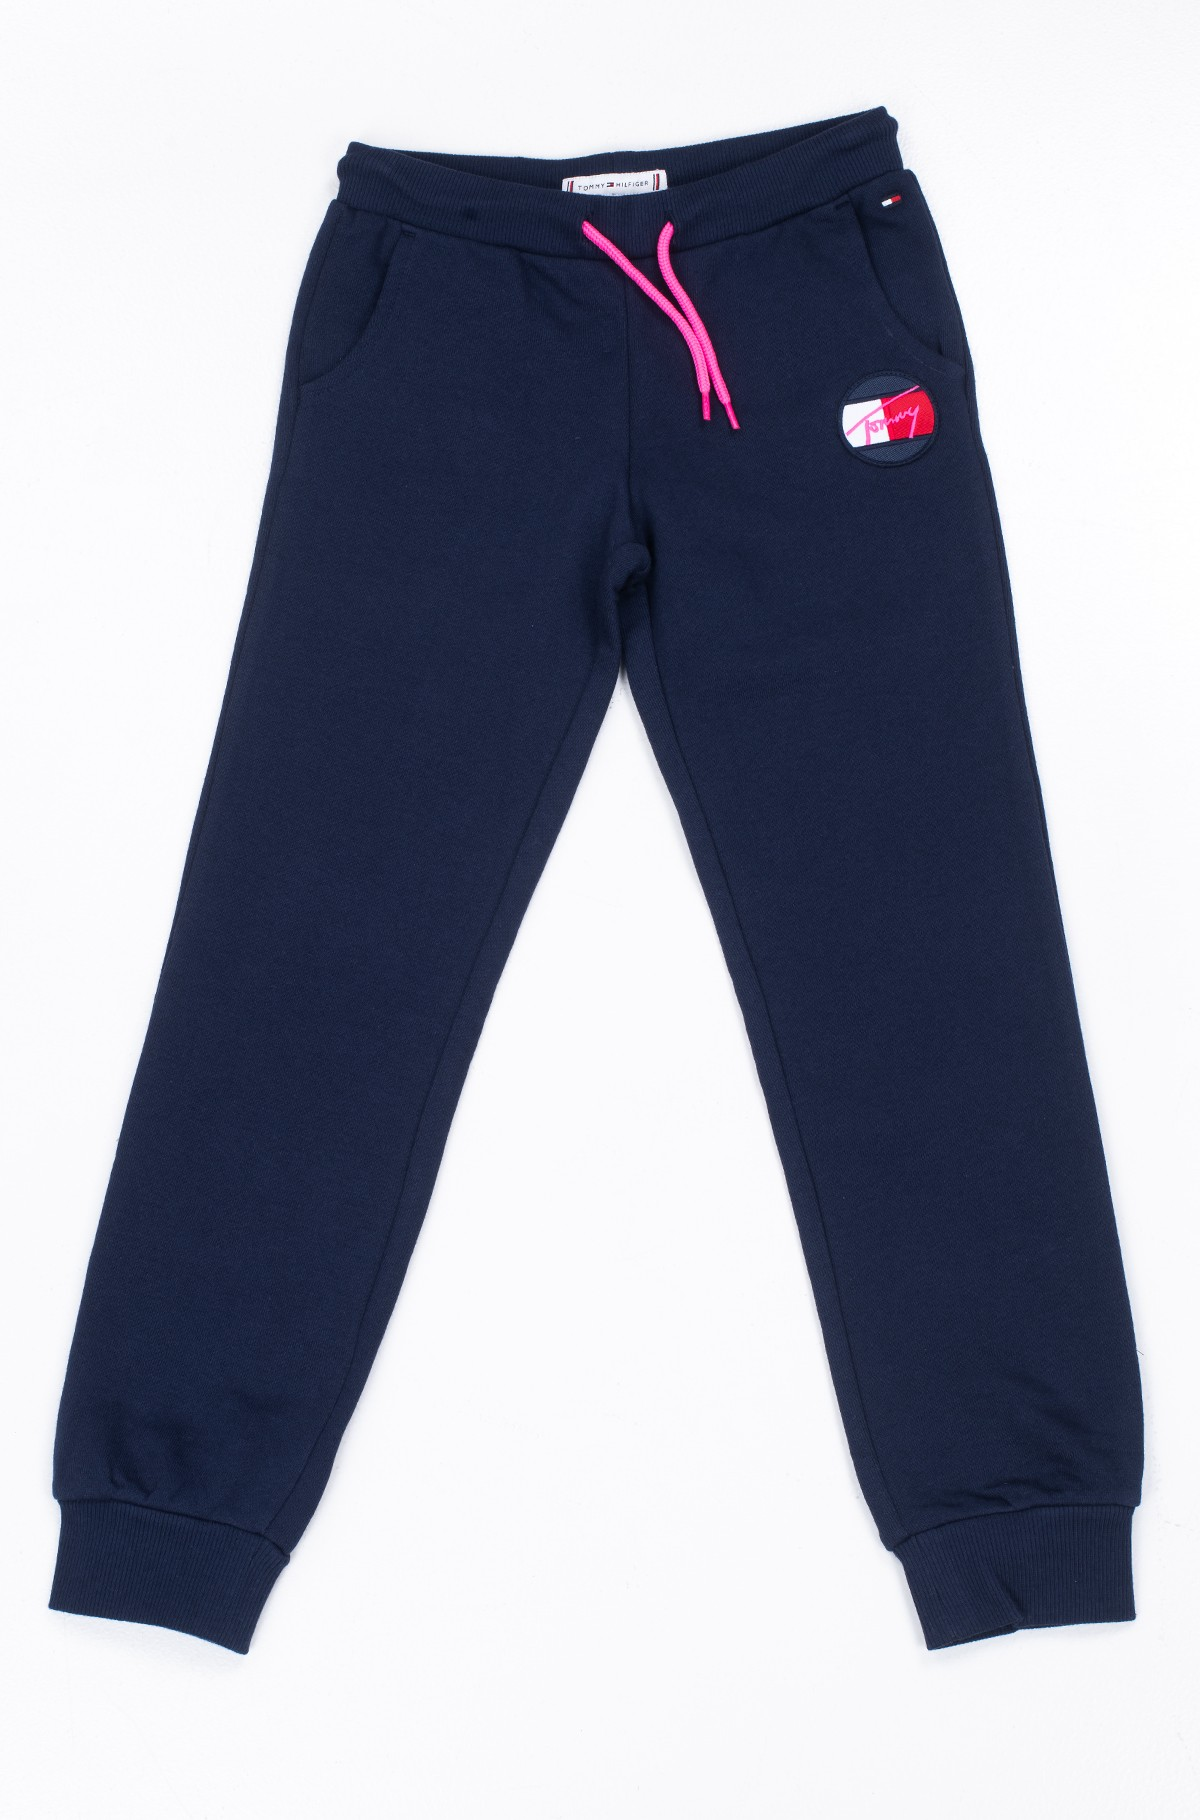 Laste dressipüksid ESSENTIAL SIGNATURE SWEATPANTS-full-1